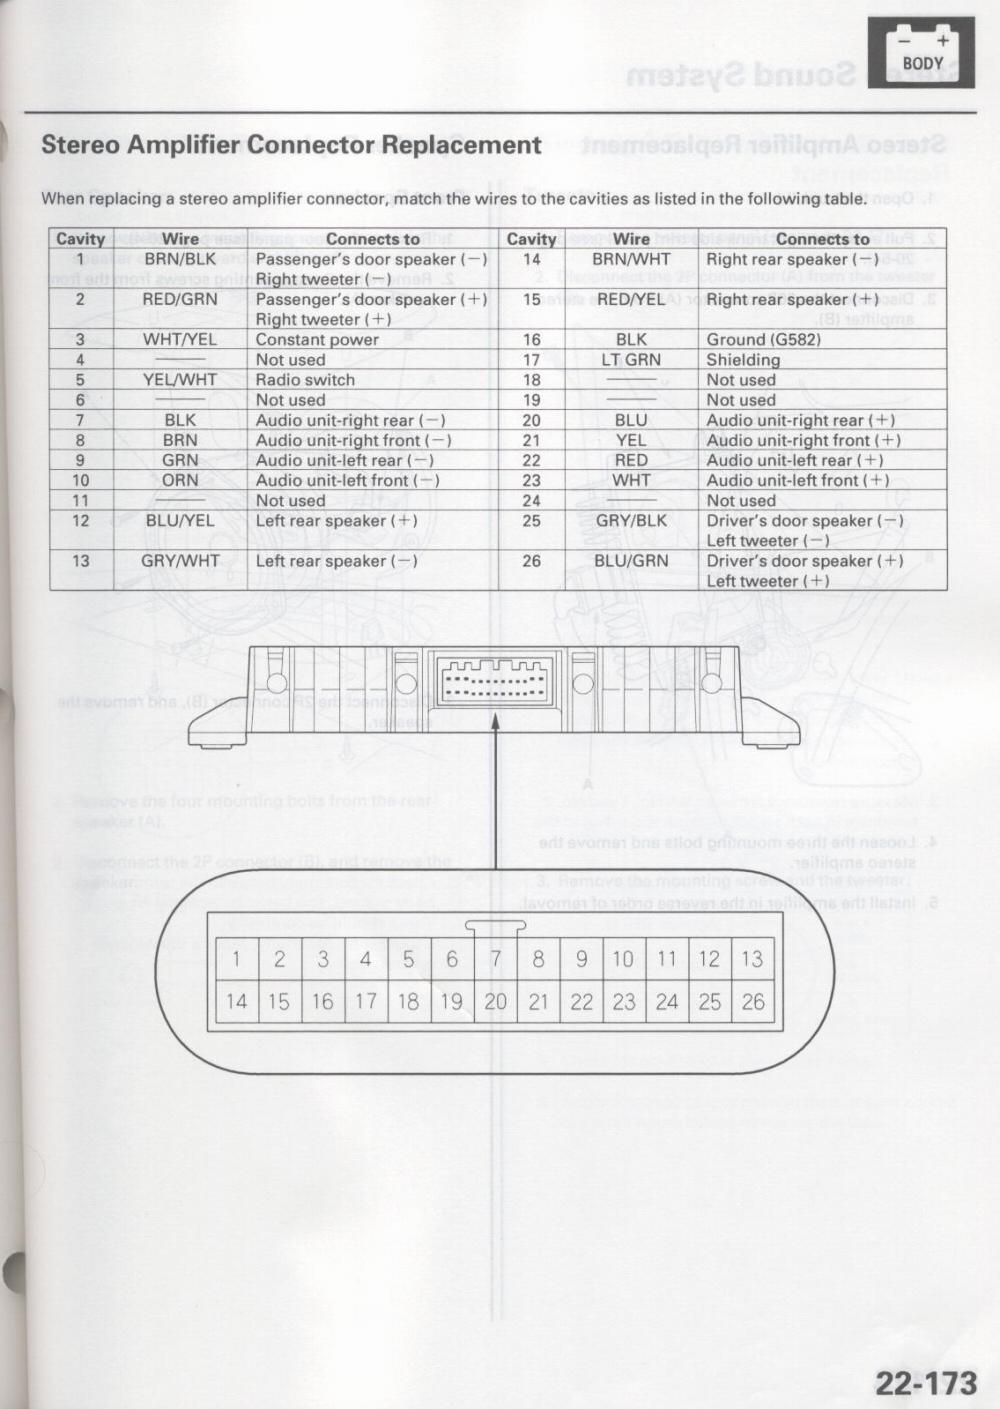 Acura 2002 TL car stereo amplifier wiring diagram harness acura stereo wiring diagram acura wiring diagrams instruction acura tl wiring diagram at bayanpartner.co